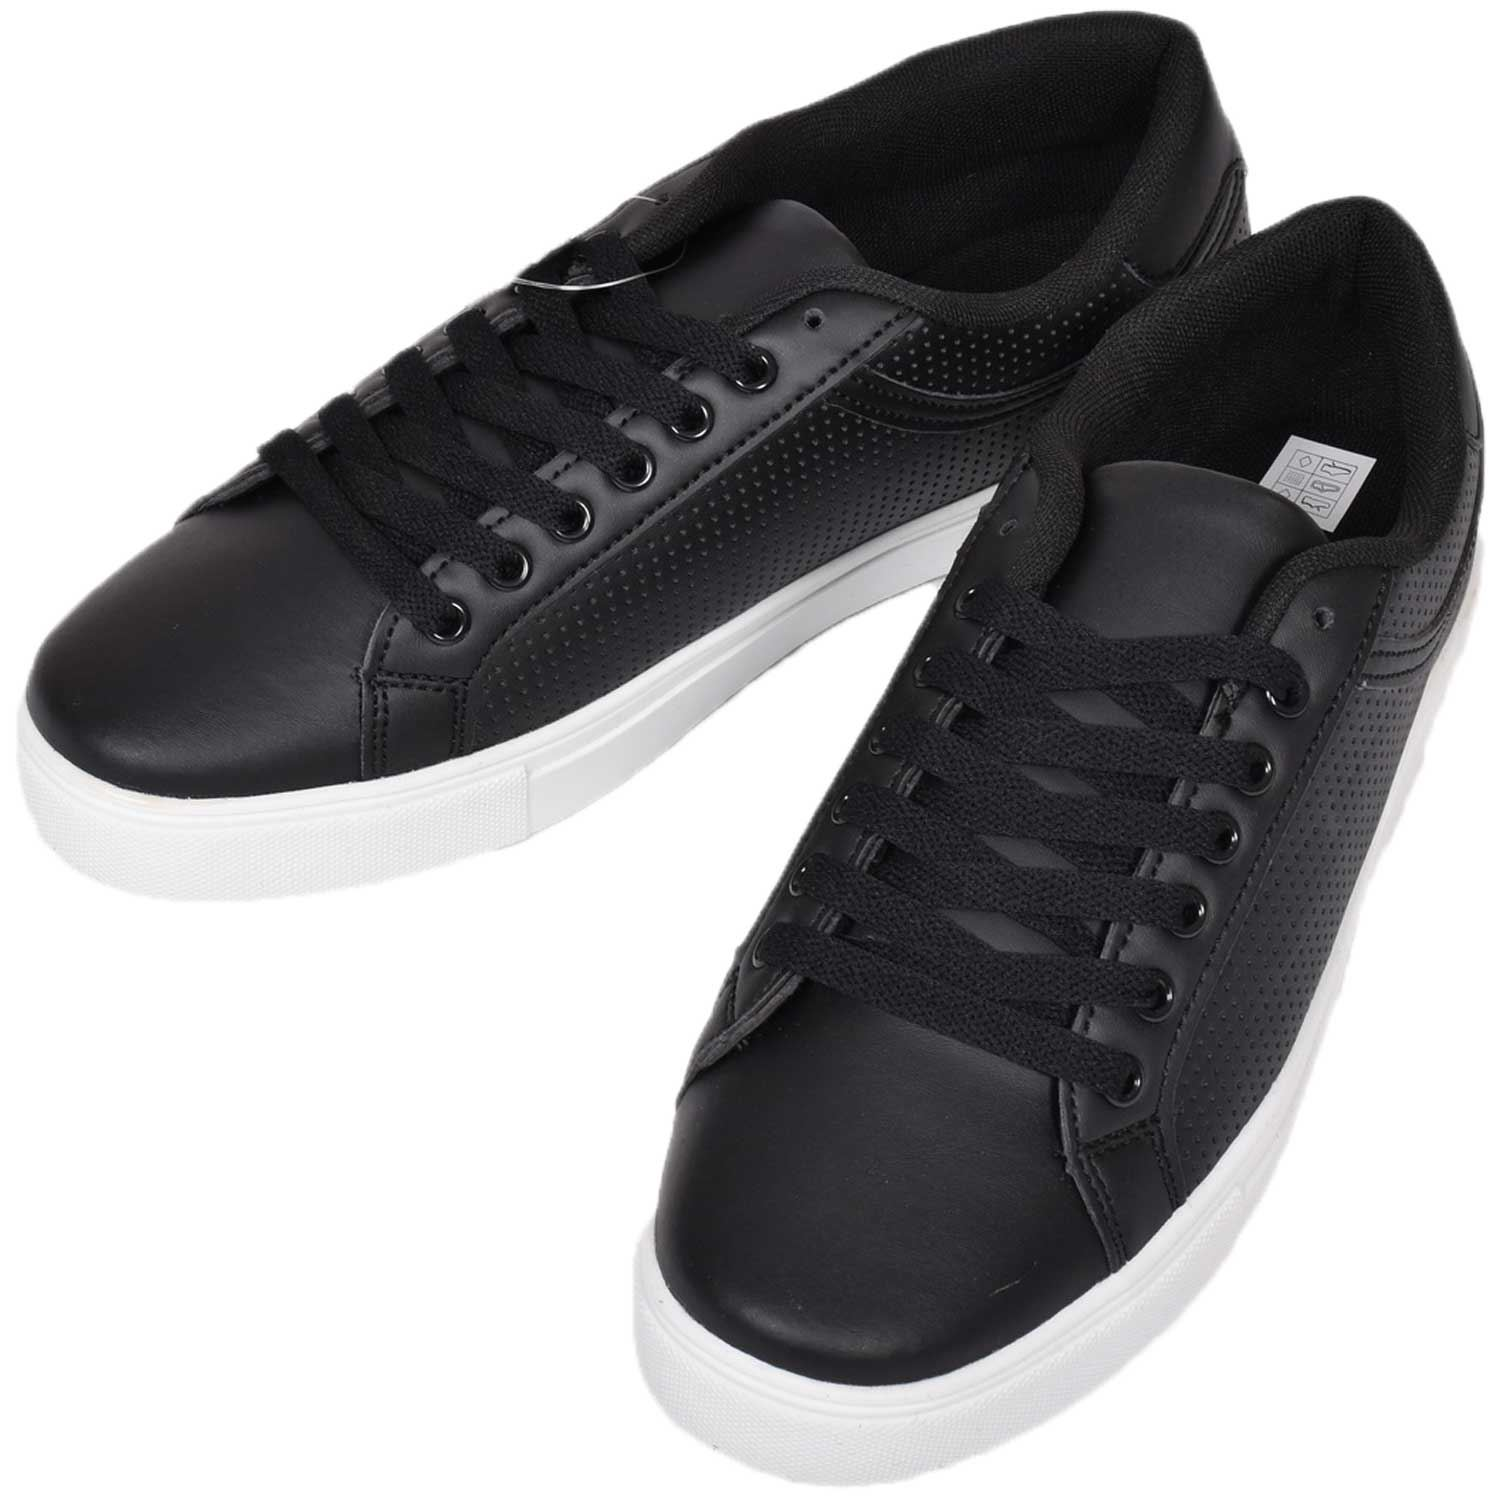 Loyalty-amp-Faith-Mens-Trainers-Sneakers-Lace-up-Running-Walking-Gym-Casual-Shoes miniatuur 11